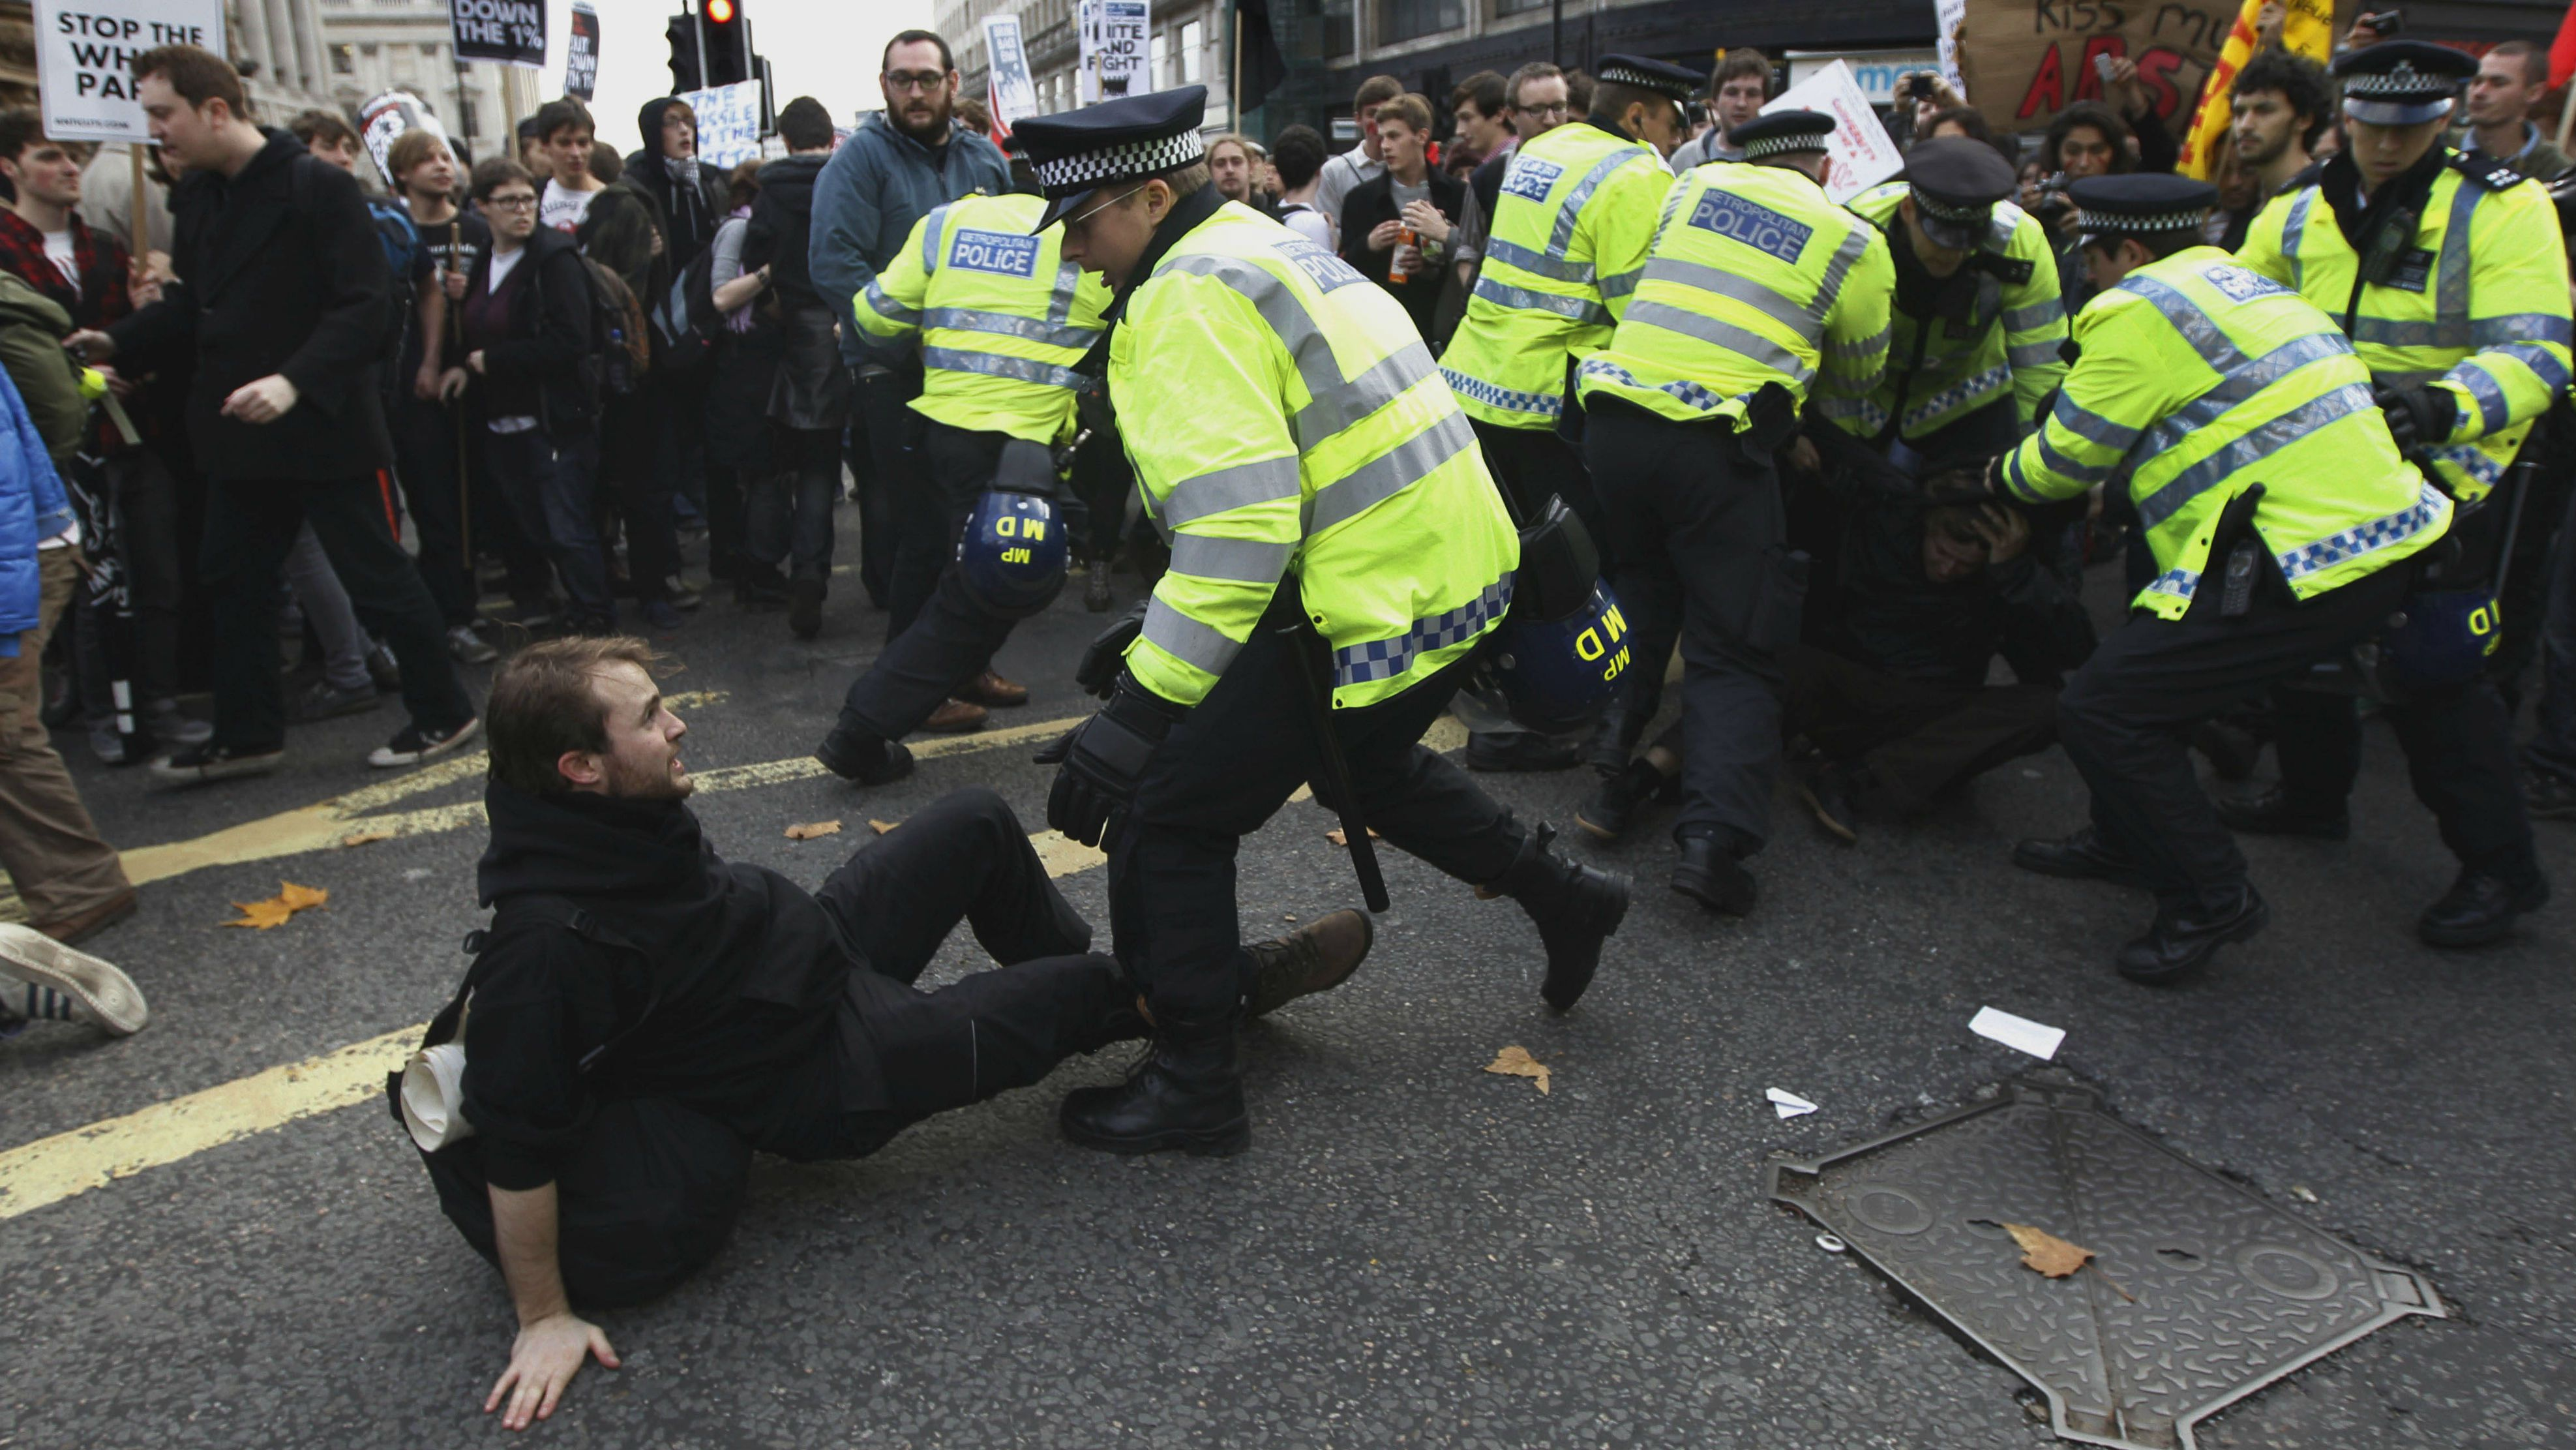 """British police officers scuffle with students during a protest march in central London, Wednesday, Nov. 9, 2011. Students marched through London Wednesday to protest cuts to public spending and a big increase in tuition fees. Police said more than 2,000 people were taking part as the march set off with chants of """"No ifs, no buts, no education cuts."""" (AP Photo/Lefteris Pitarakis)"""